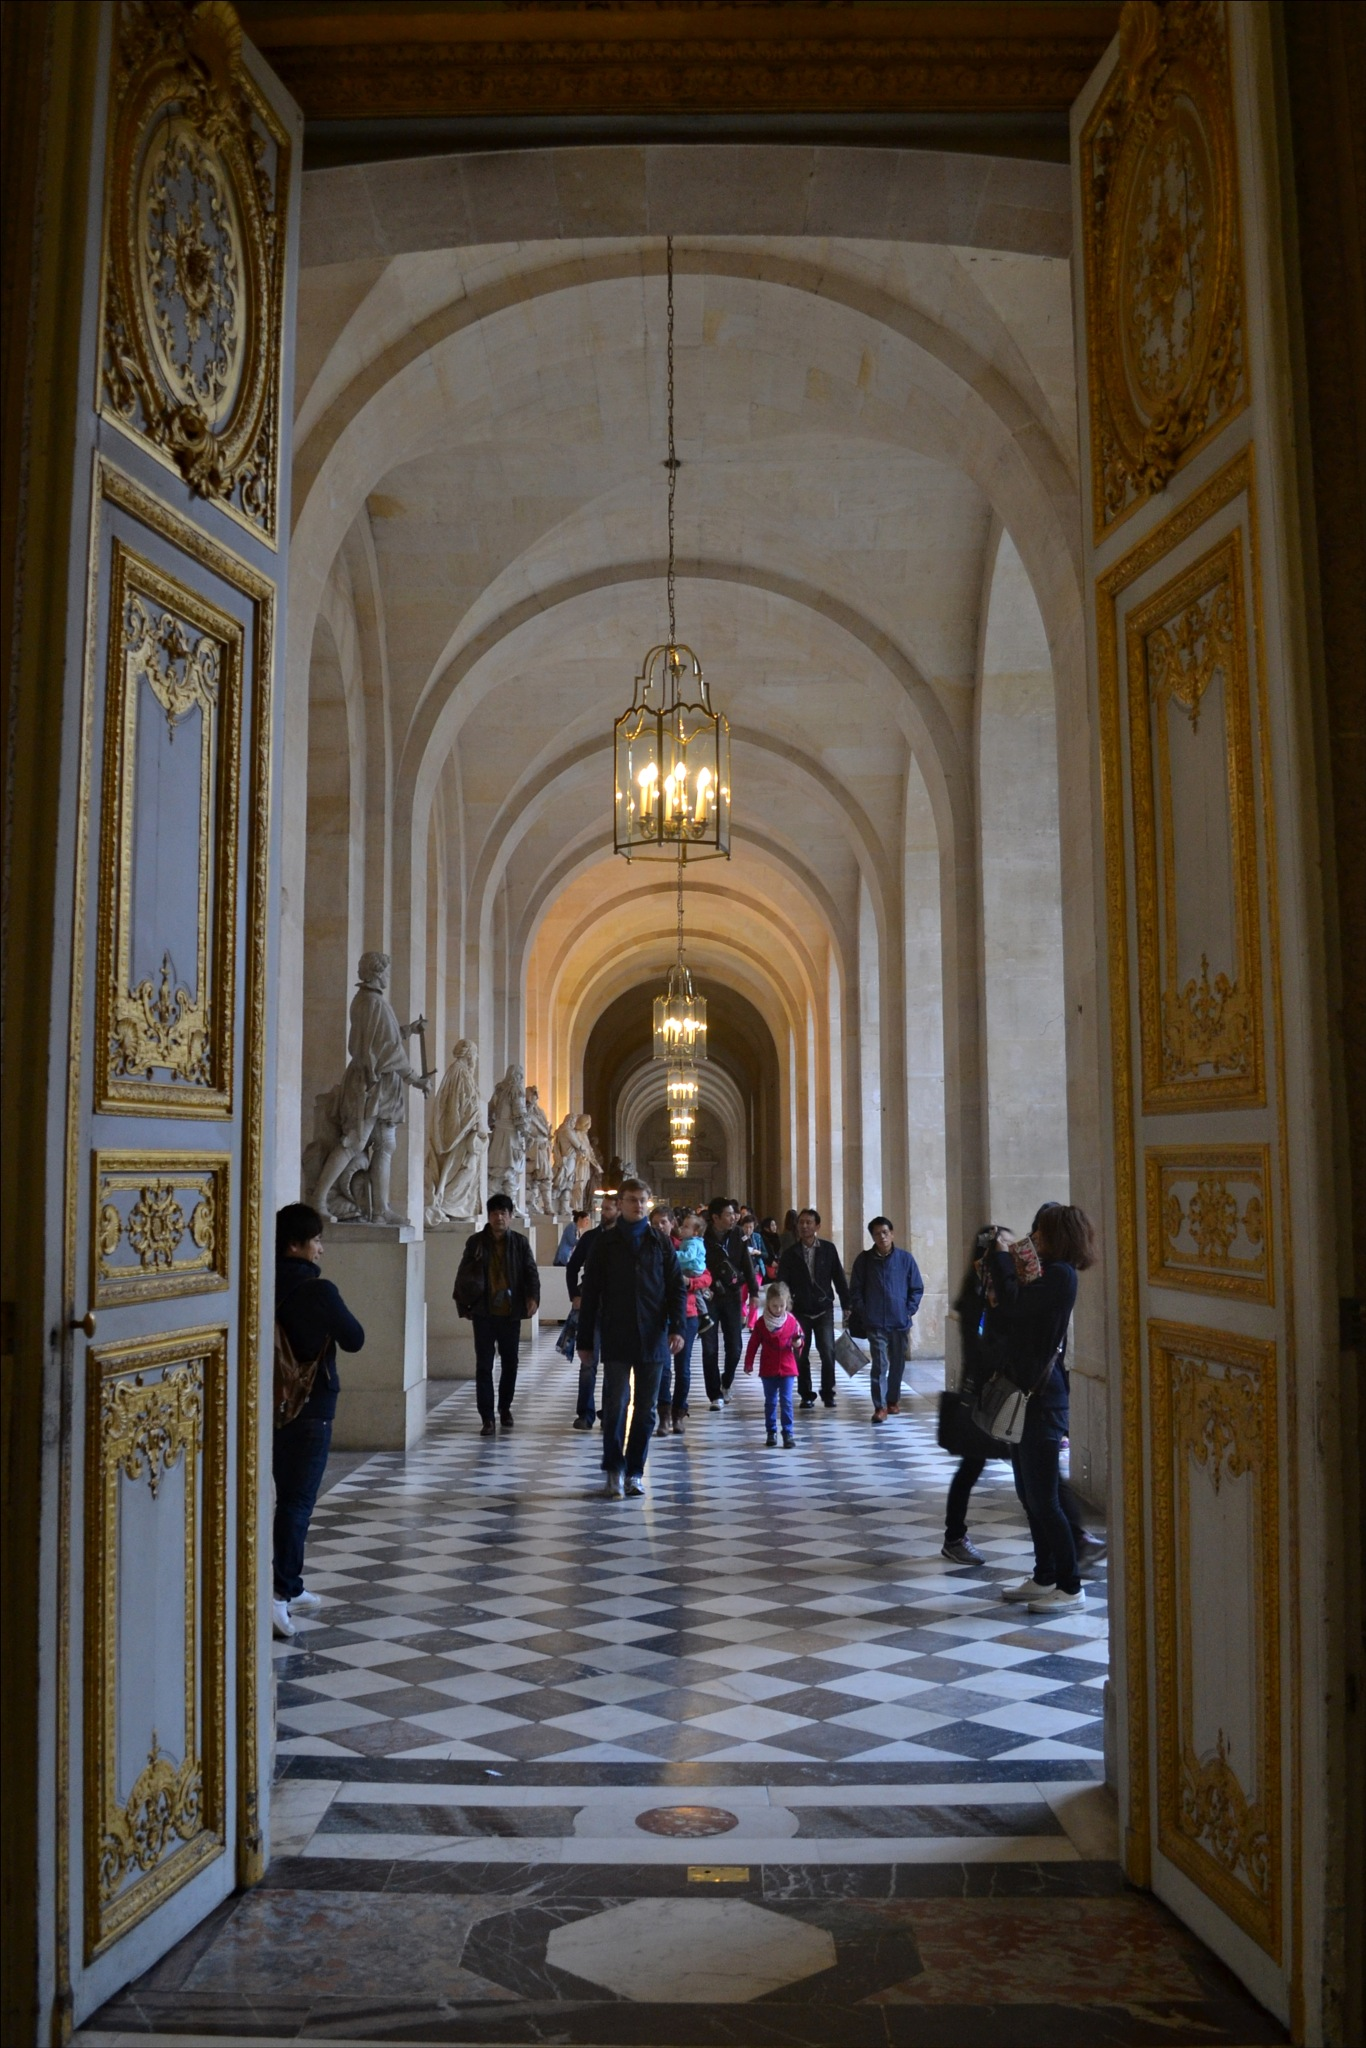 Entrance door to the exhibition wing of statues of the Palace of Versailles by Fred Matos